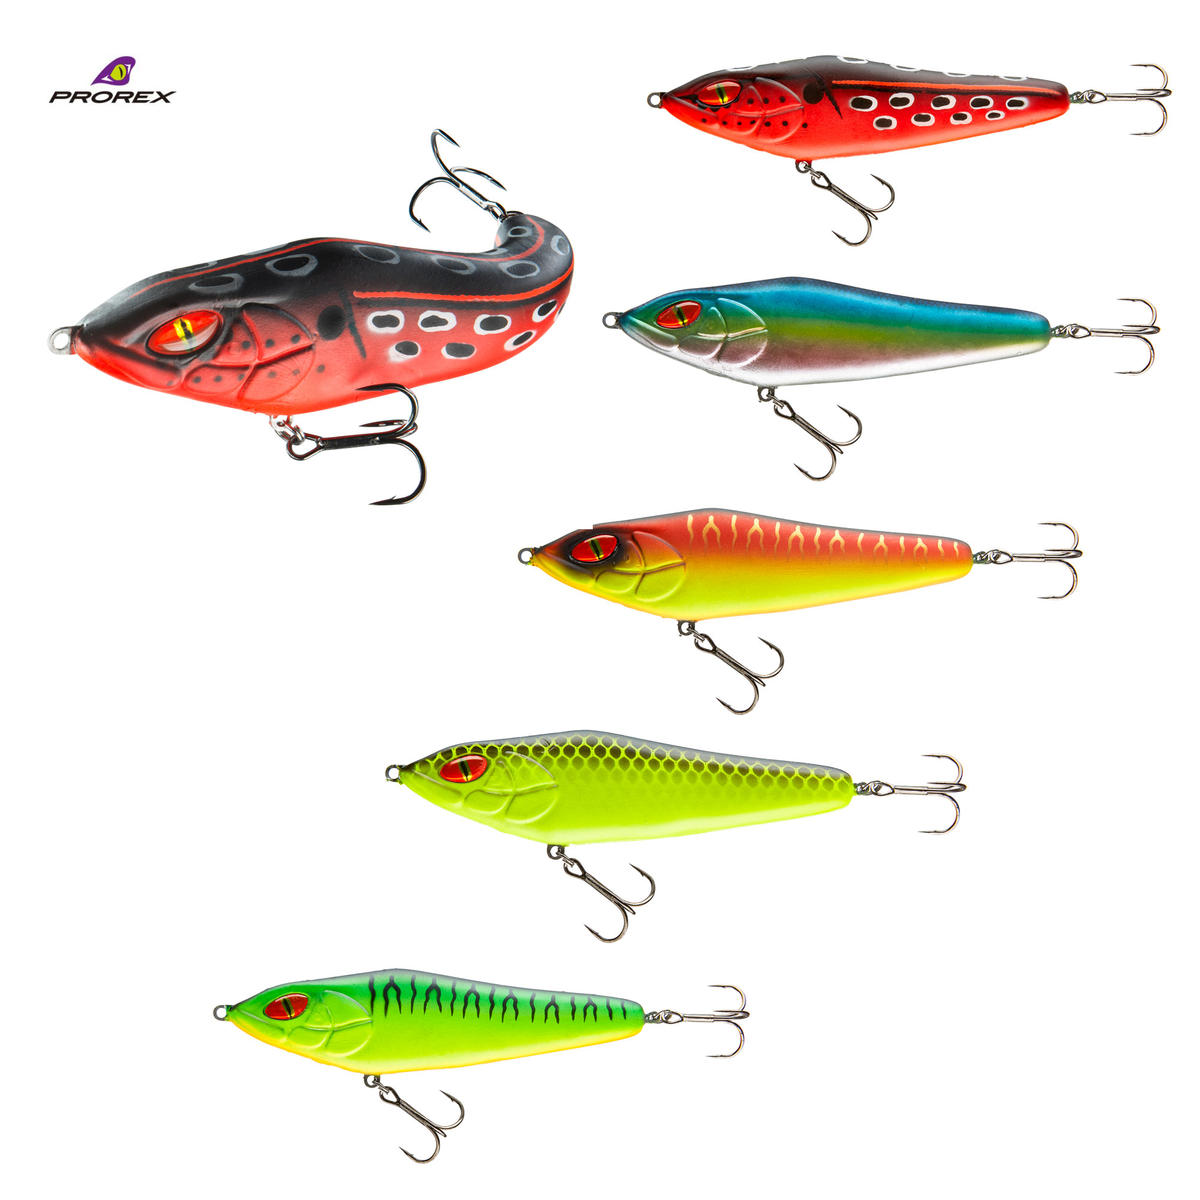 New Daiwa Prorex Jelly Jerk 155 Pike / Predator Lures 15.5cm - All Colours